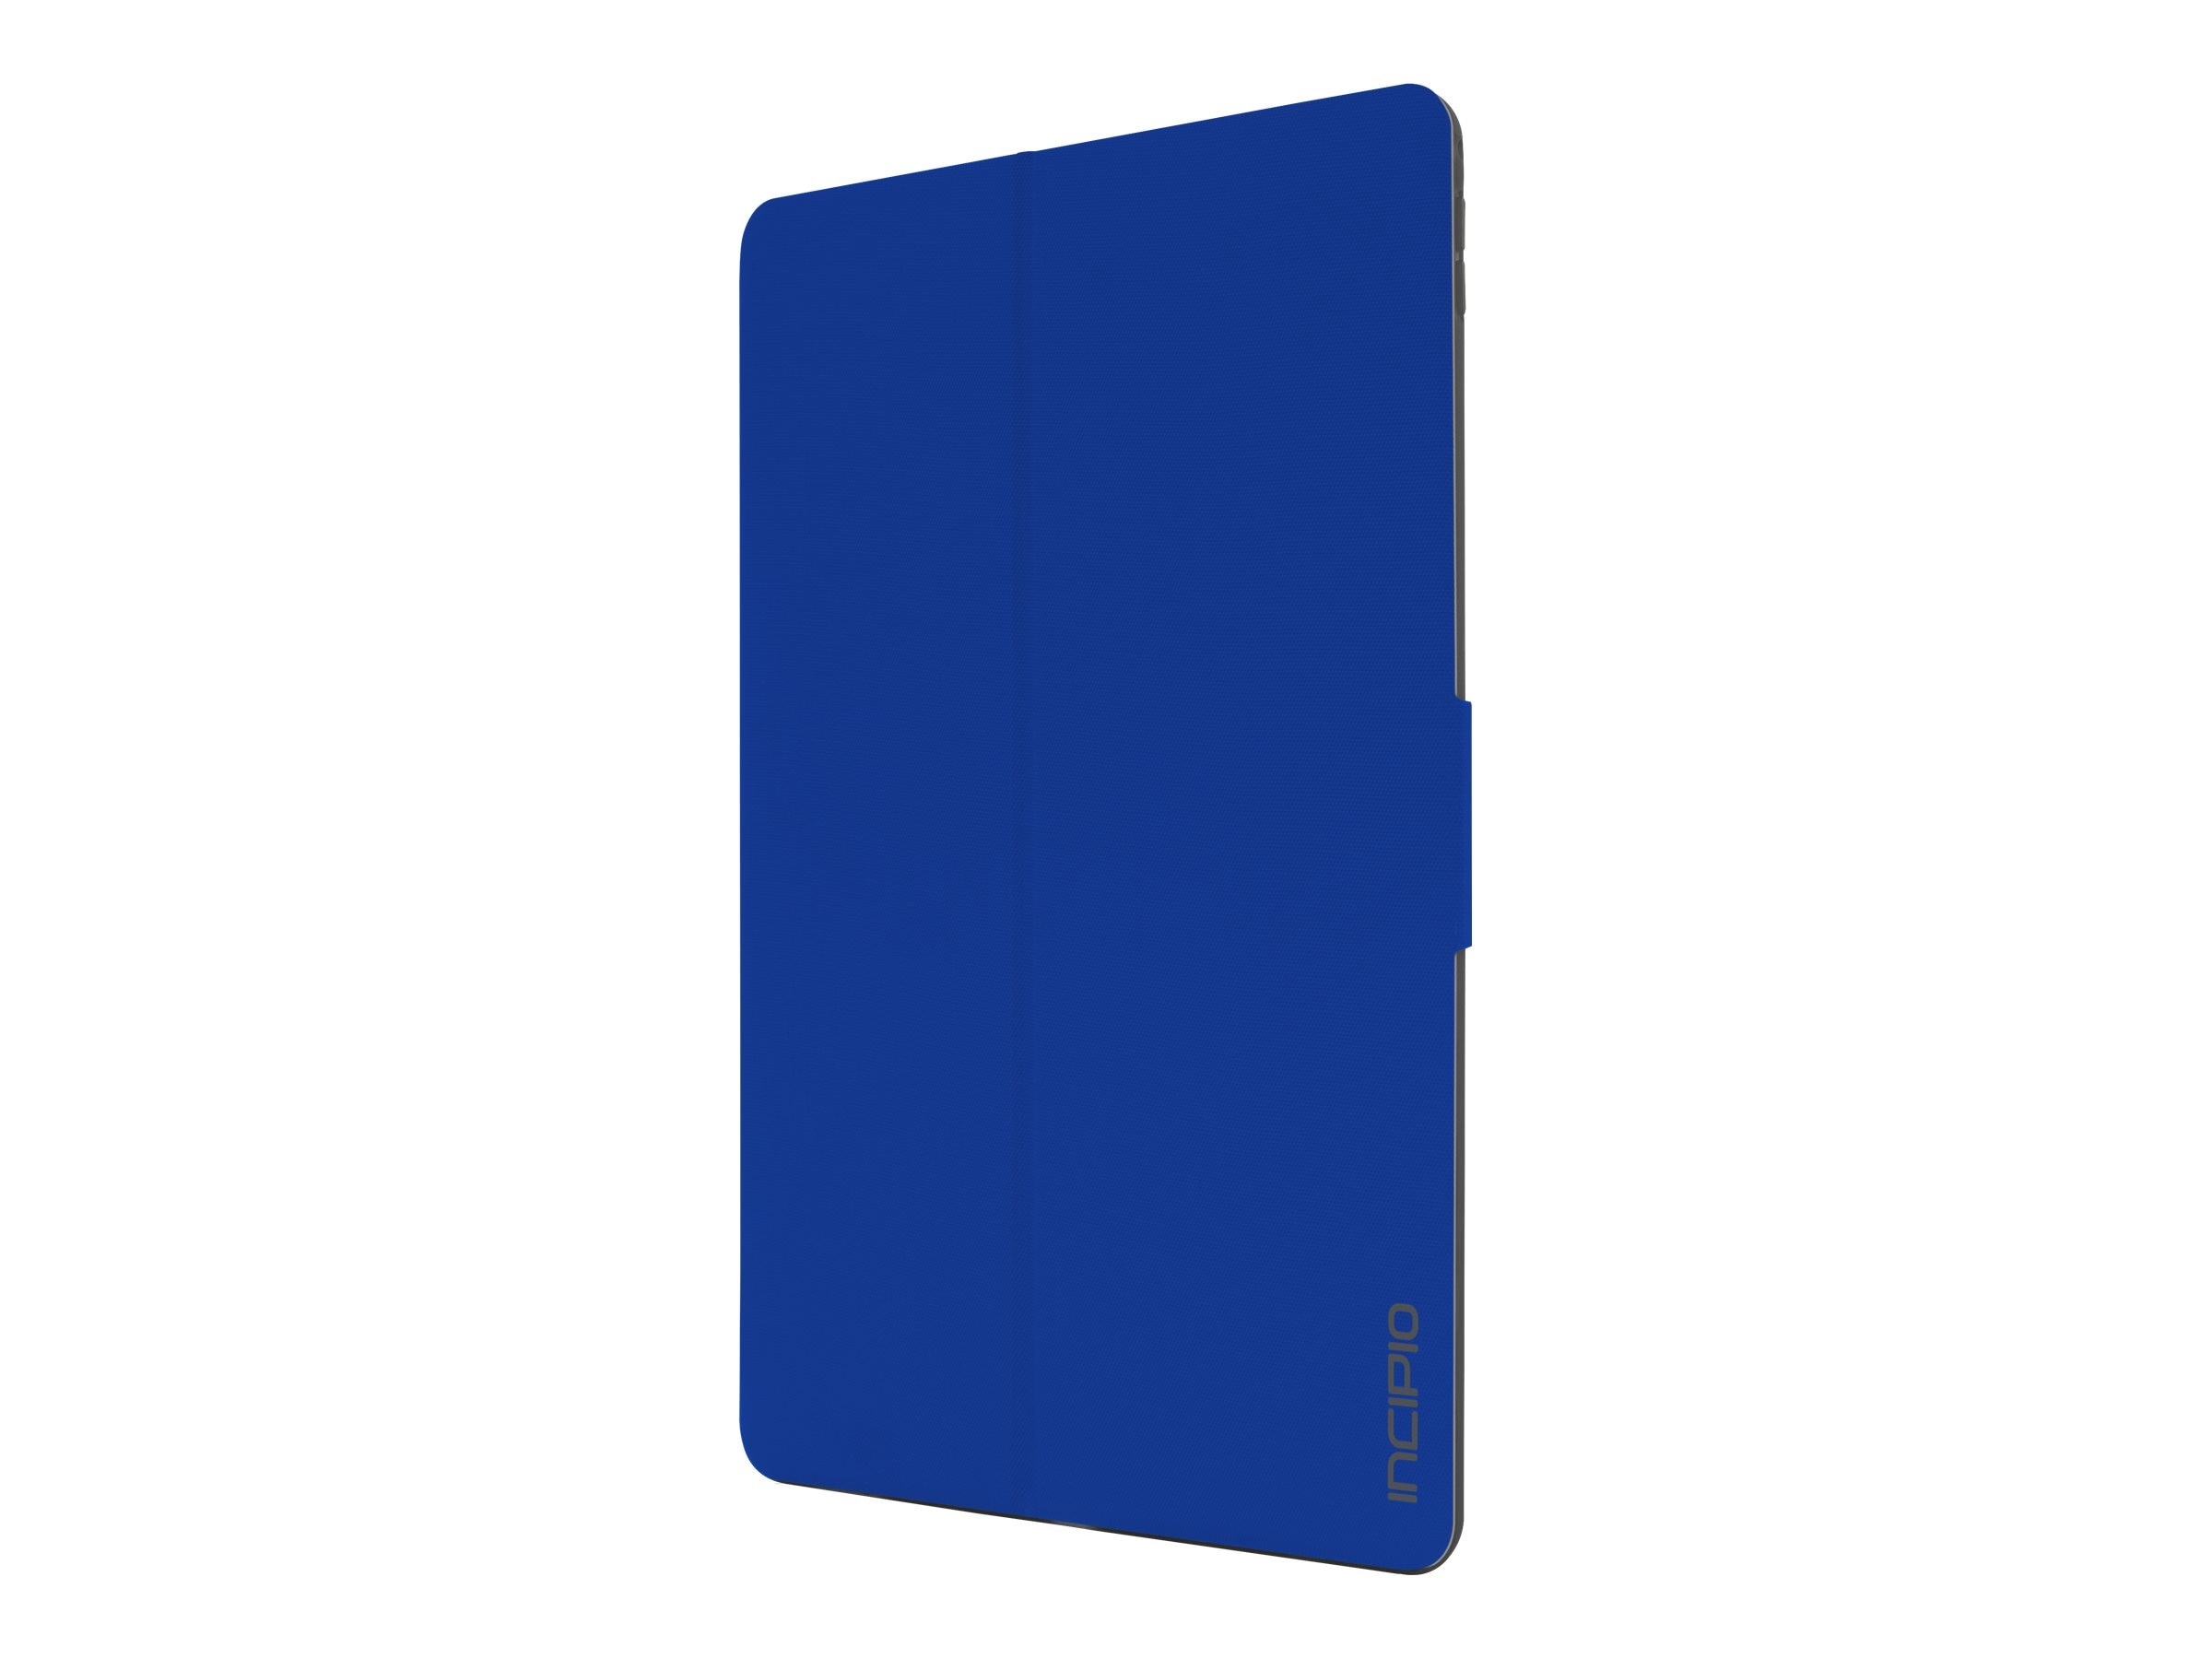 Incipio Clarion Shock Absorbing Translucent Folio for iPad Pro 12.9, Blue